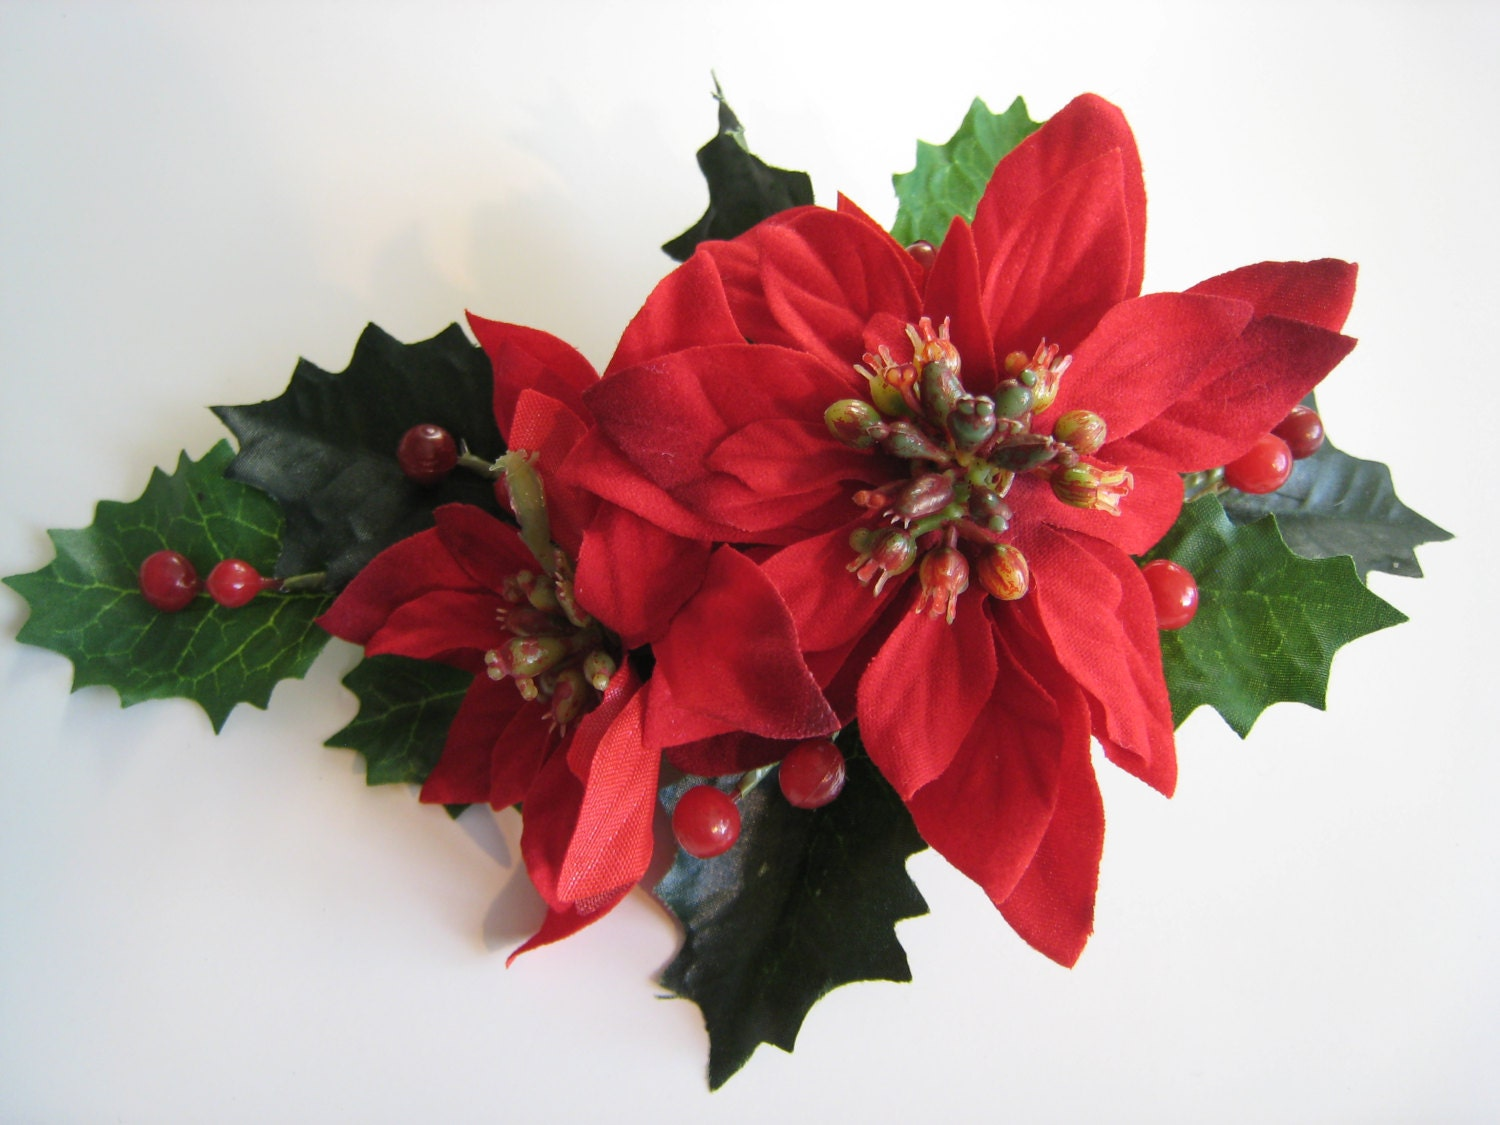 or red poinsettia - photo #42